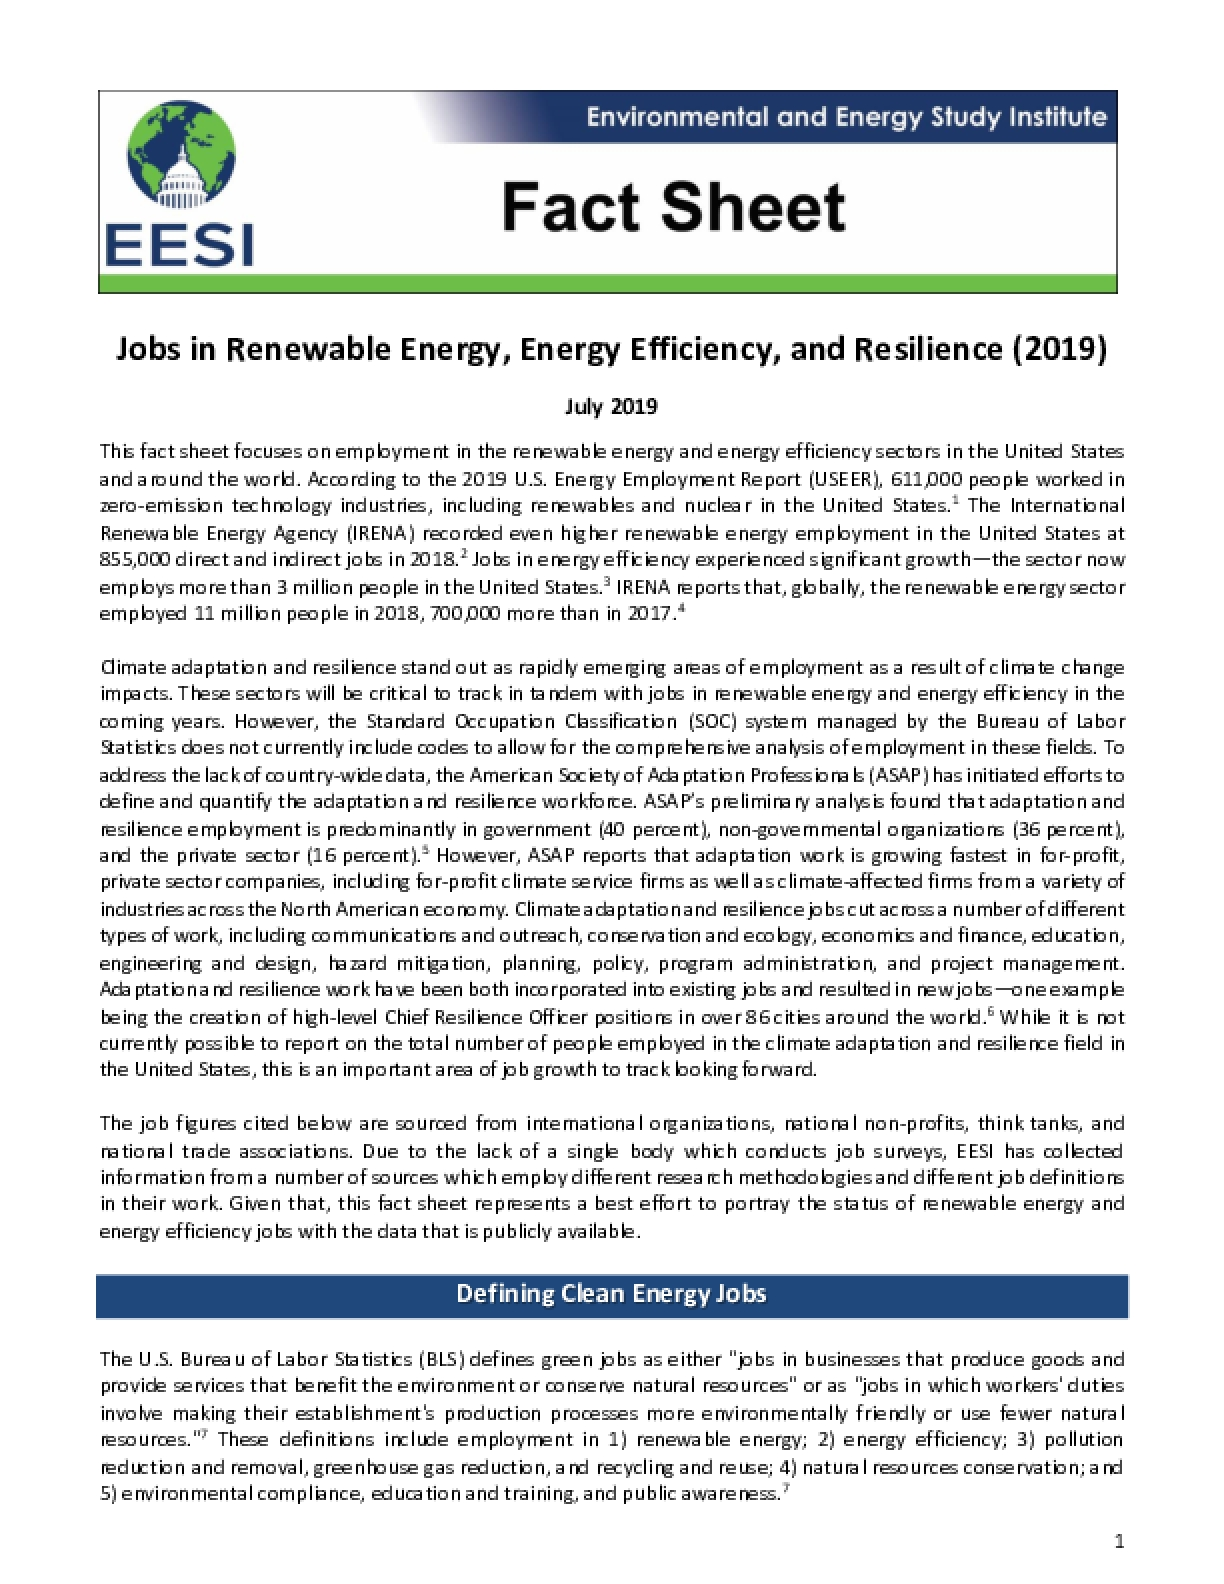 Fact Sheet - Jobs in Renewable Energy, Energy Efficiency, and Resilience (2019)